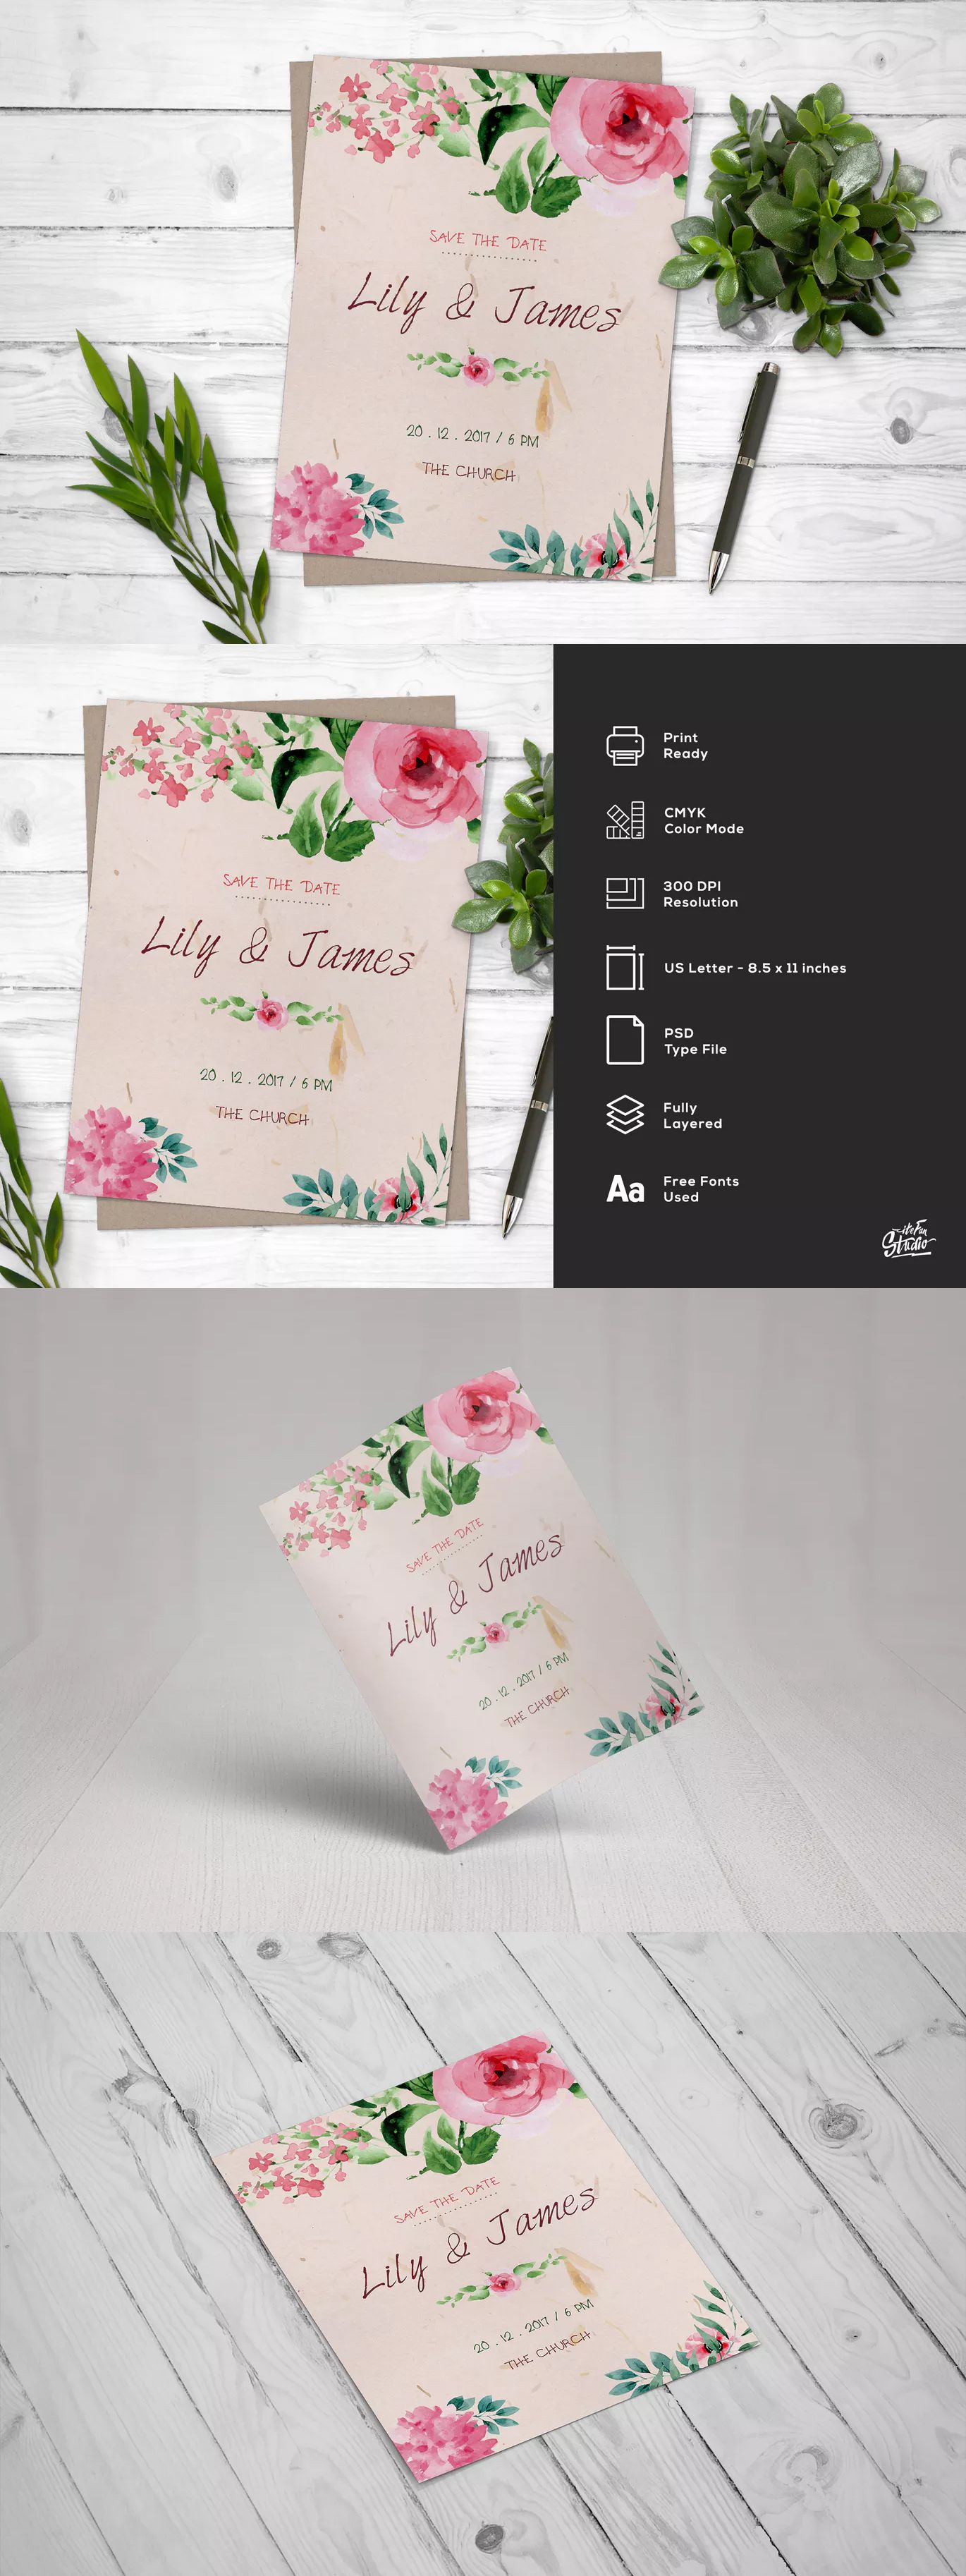 Watercolor Floral Save The Date Wedding Flyer Template PSD US Letter ...